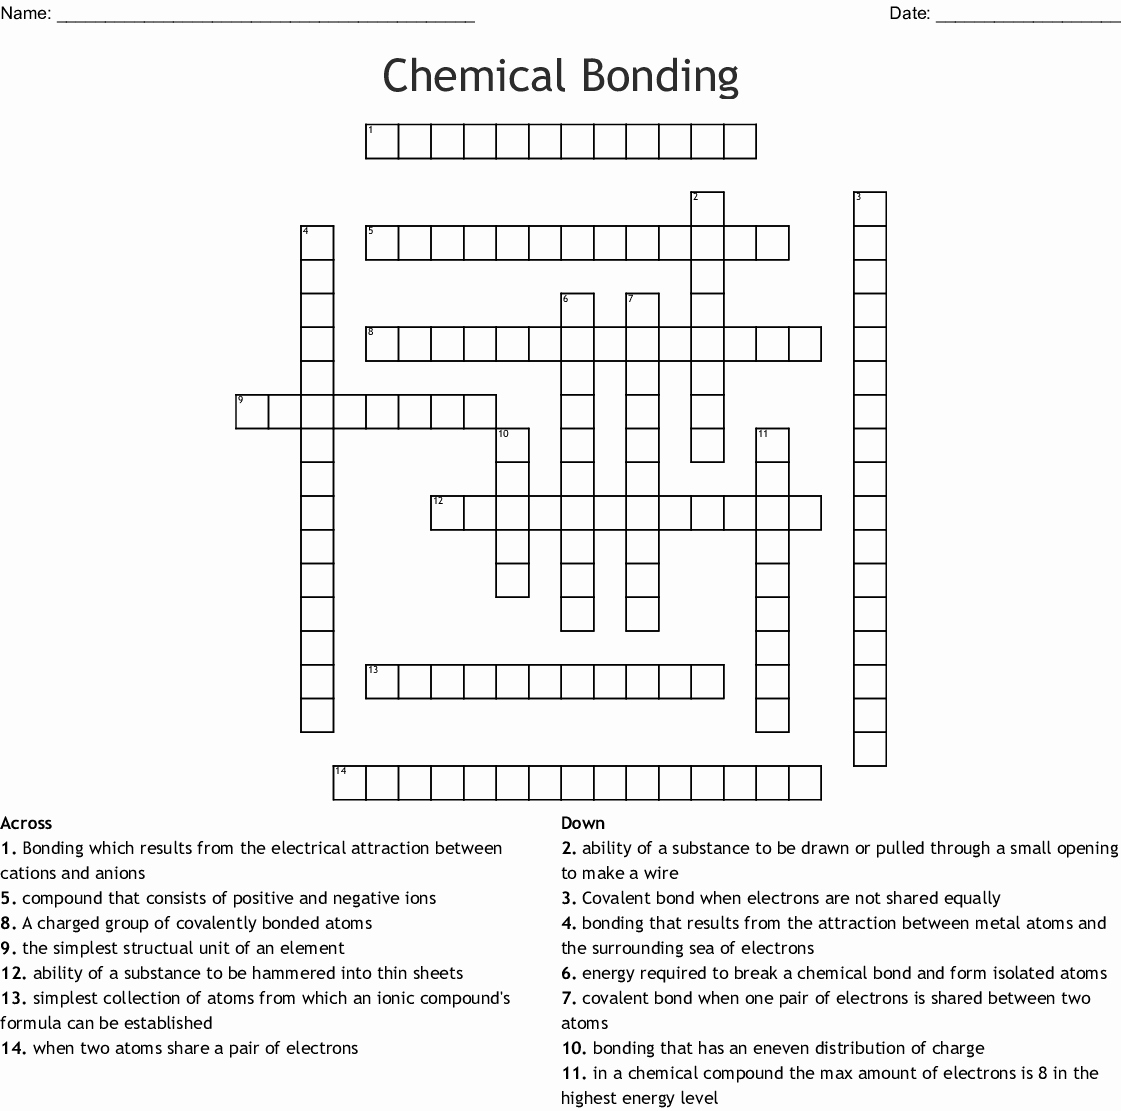 Chemistry Review Worksheet Answers Fresh Chemical Bonding Worksheet Answers Review